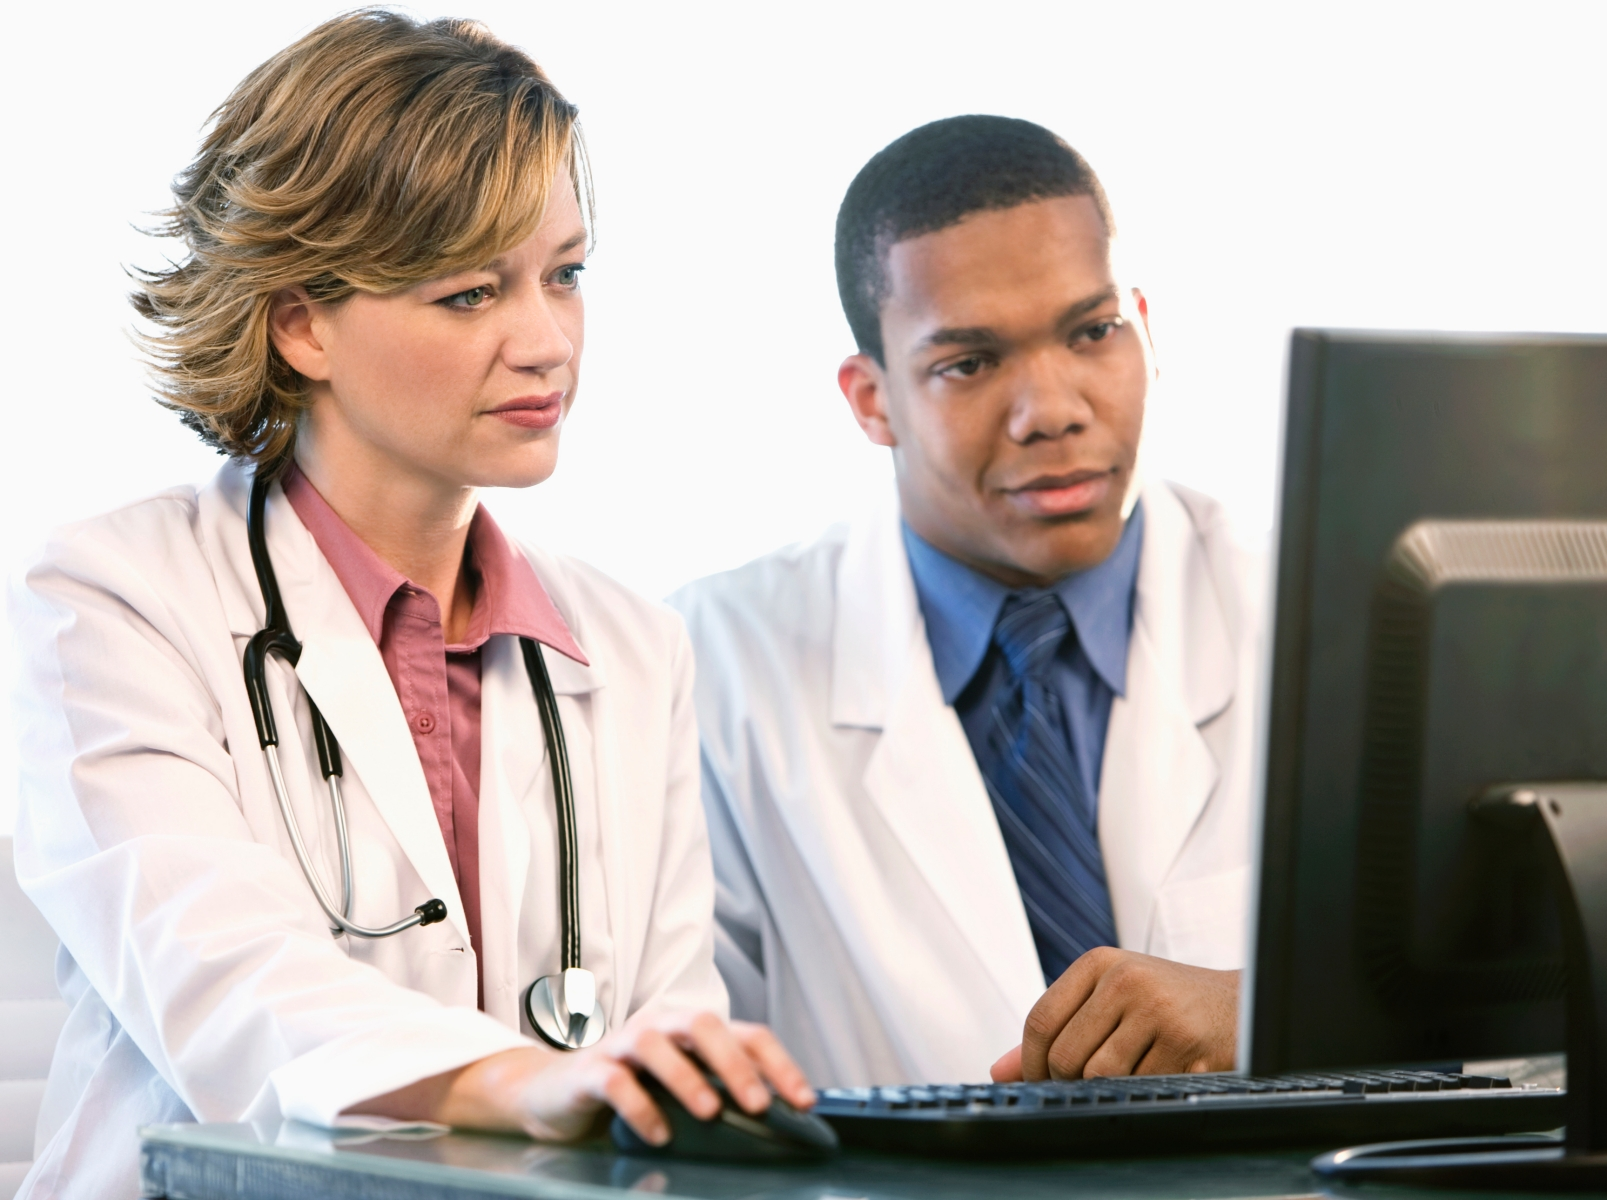 Benefits of Electronic Health Records for Patients